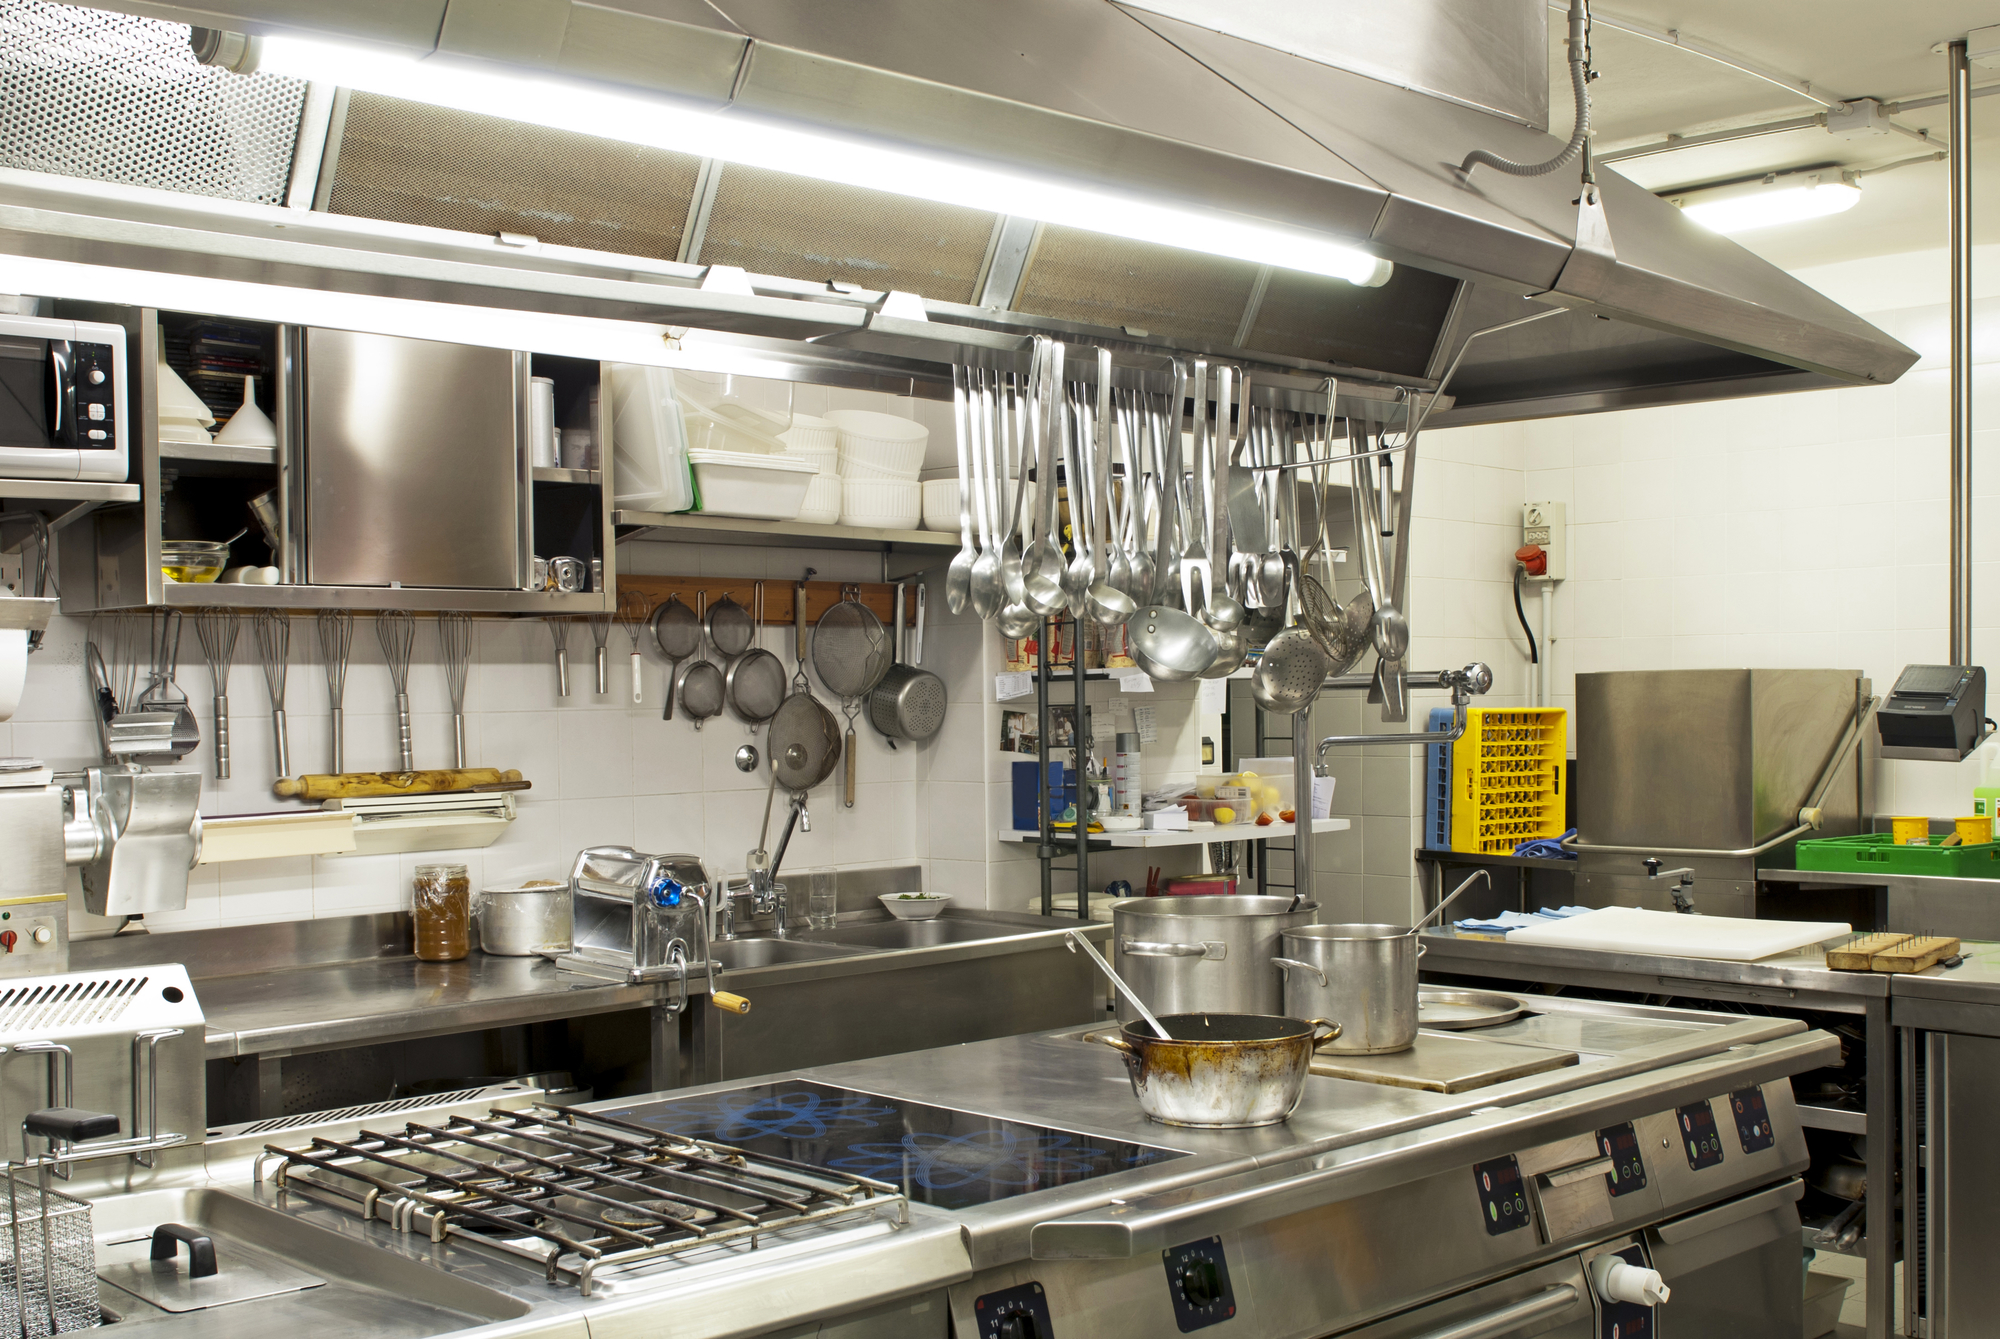 New To Running A Kitchen Here Is Your Restaurant Equipment Checklist Tech